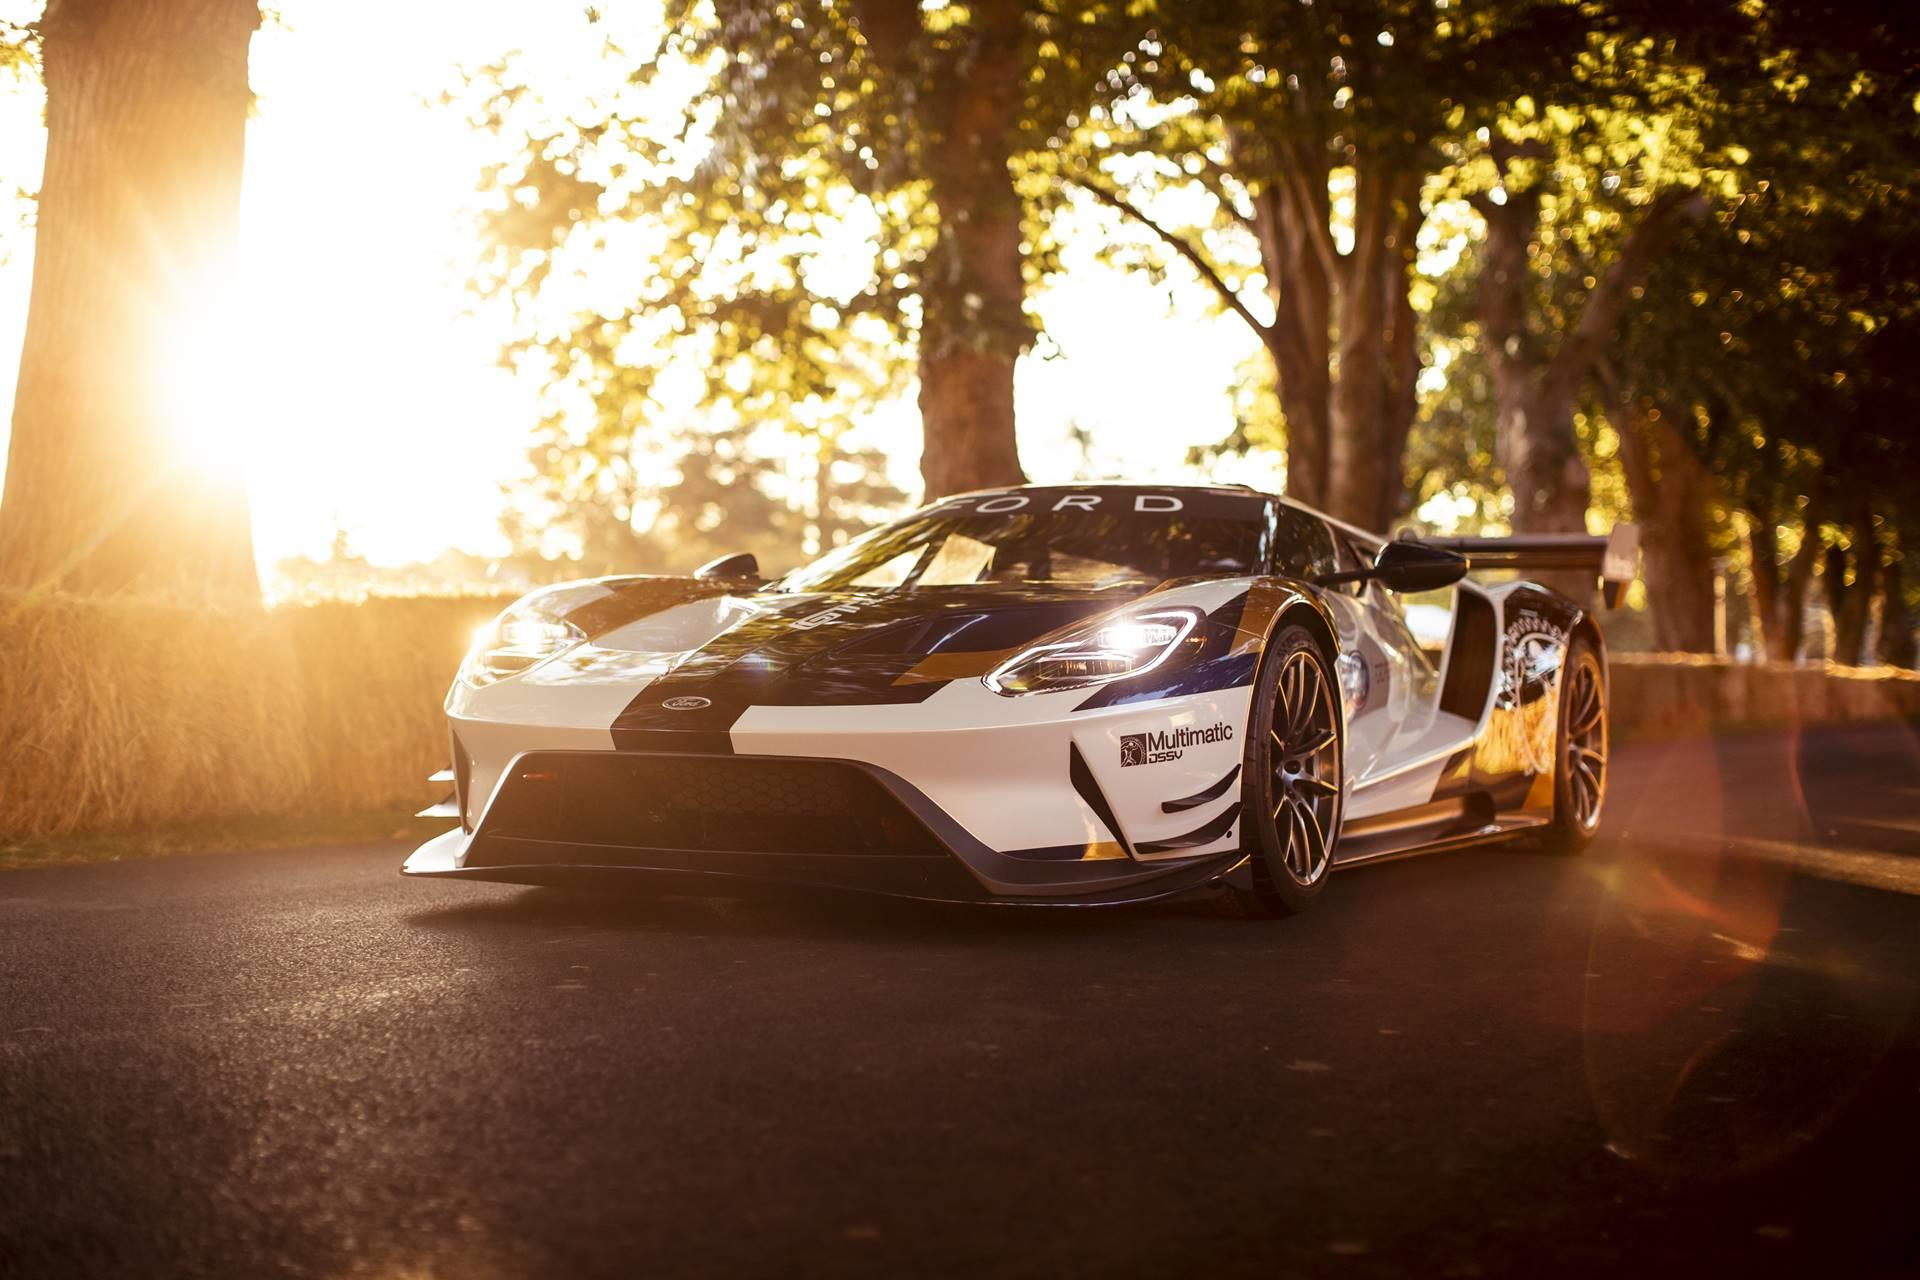 2019 Ford Gt Mk Ii News And Information Conceptcarz Com